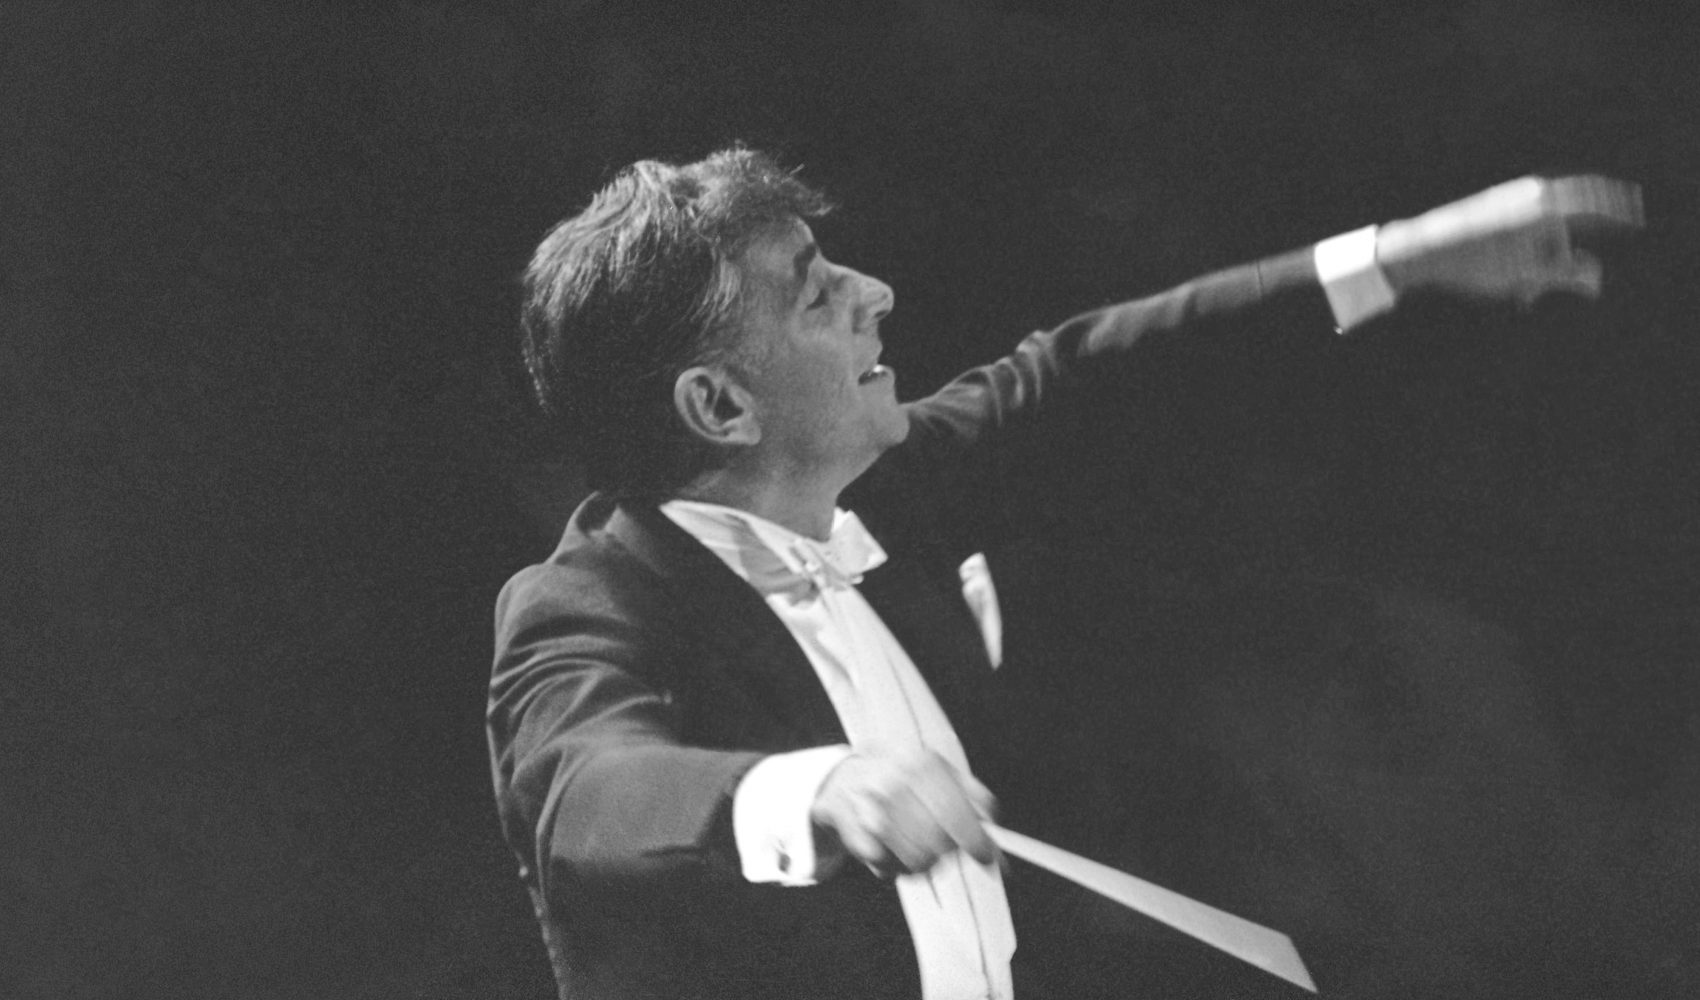 Leonard Bernstein conducts the New York Philharmonic in 1962 at the inaugural concert in New York's Philharmonic Hall.   (AP)